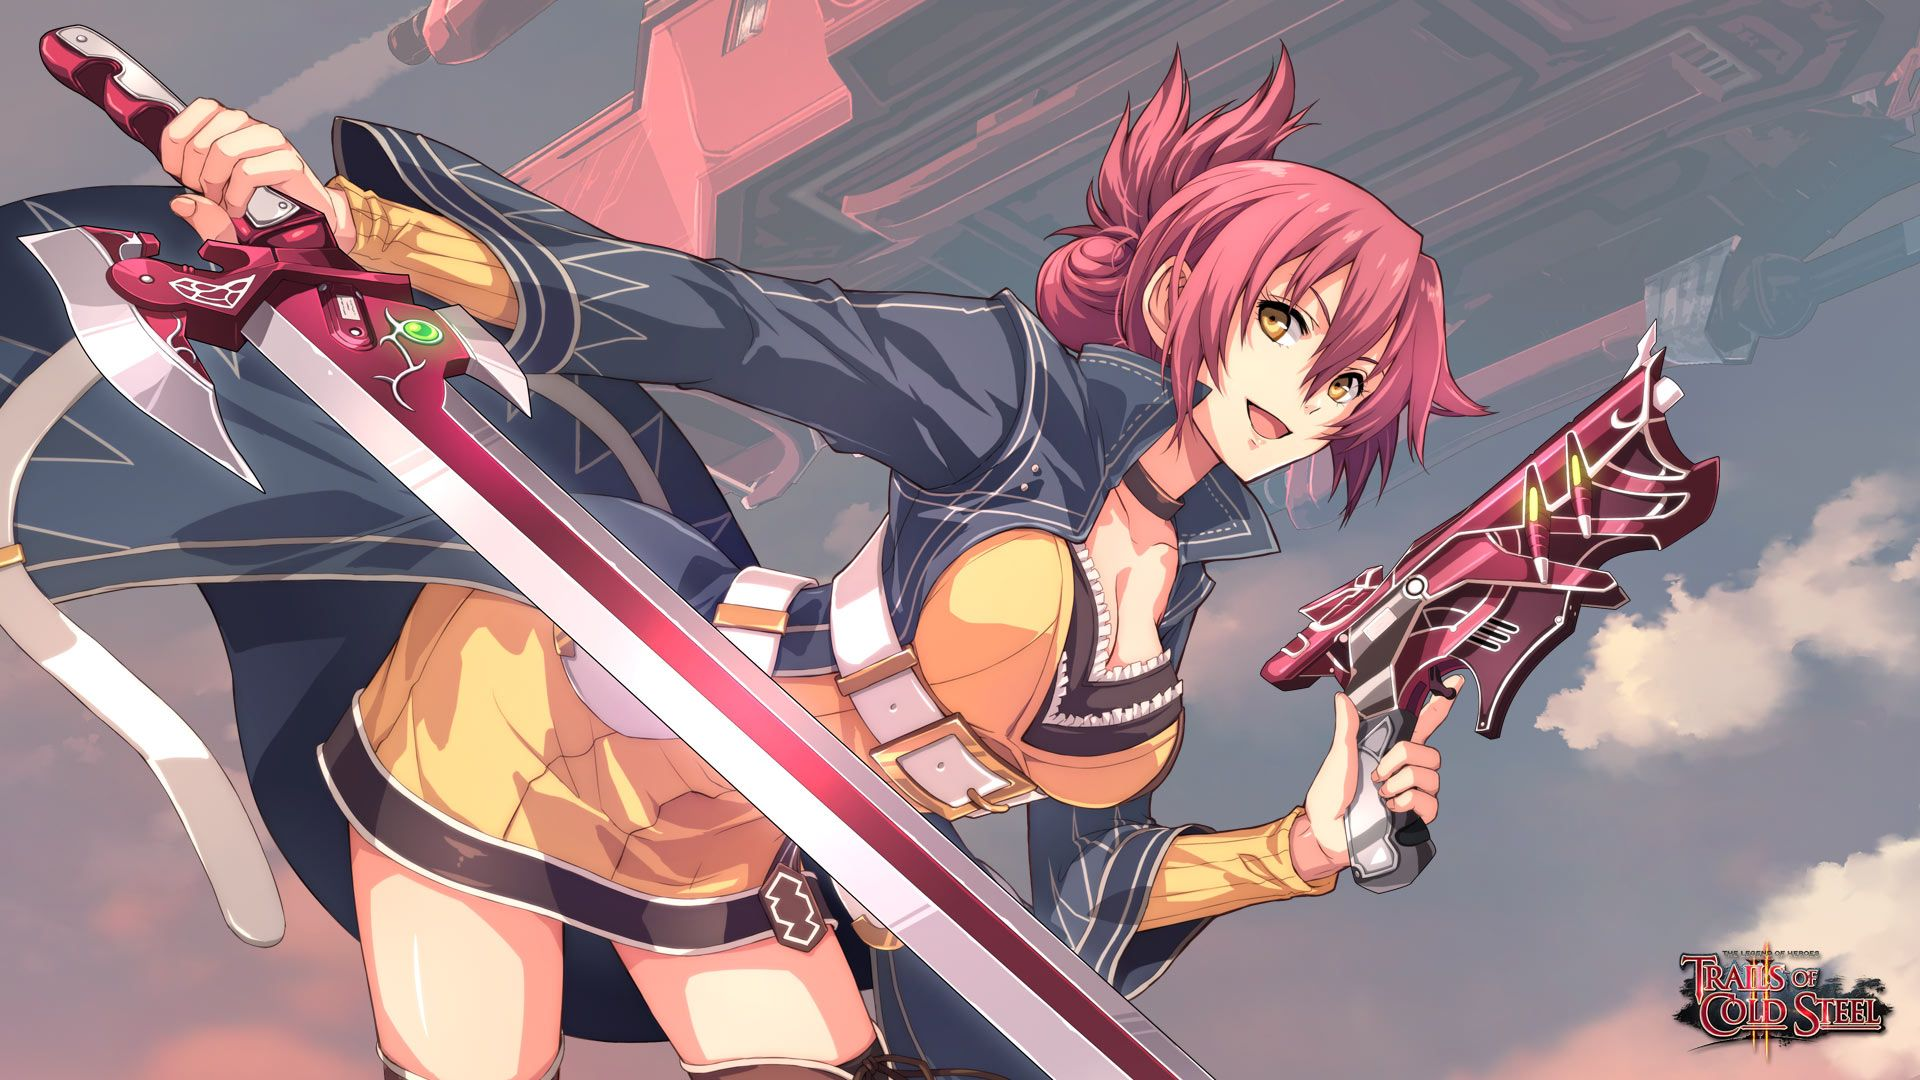 Pin By Tiaan Lotter On Eiyuu Densetsu The Legend Of Heroes Trails Of Cold Steel Cold Steel